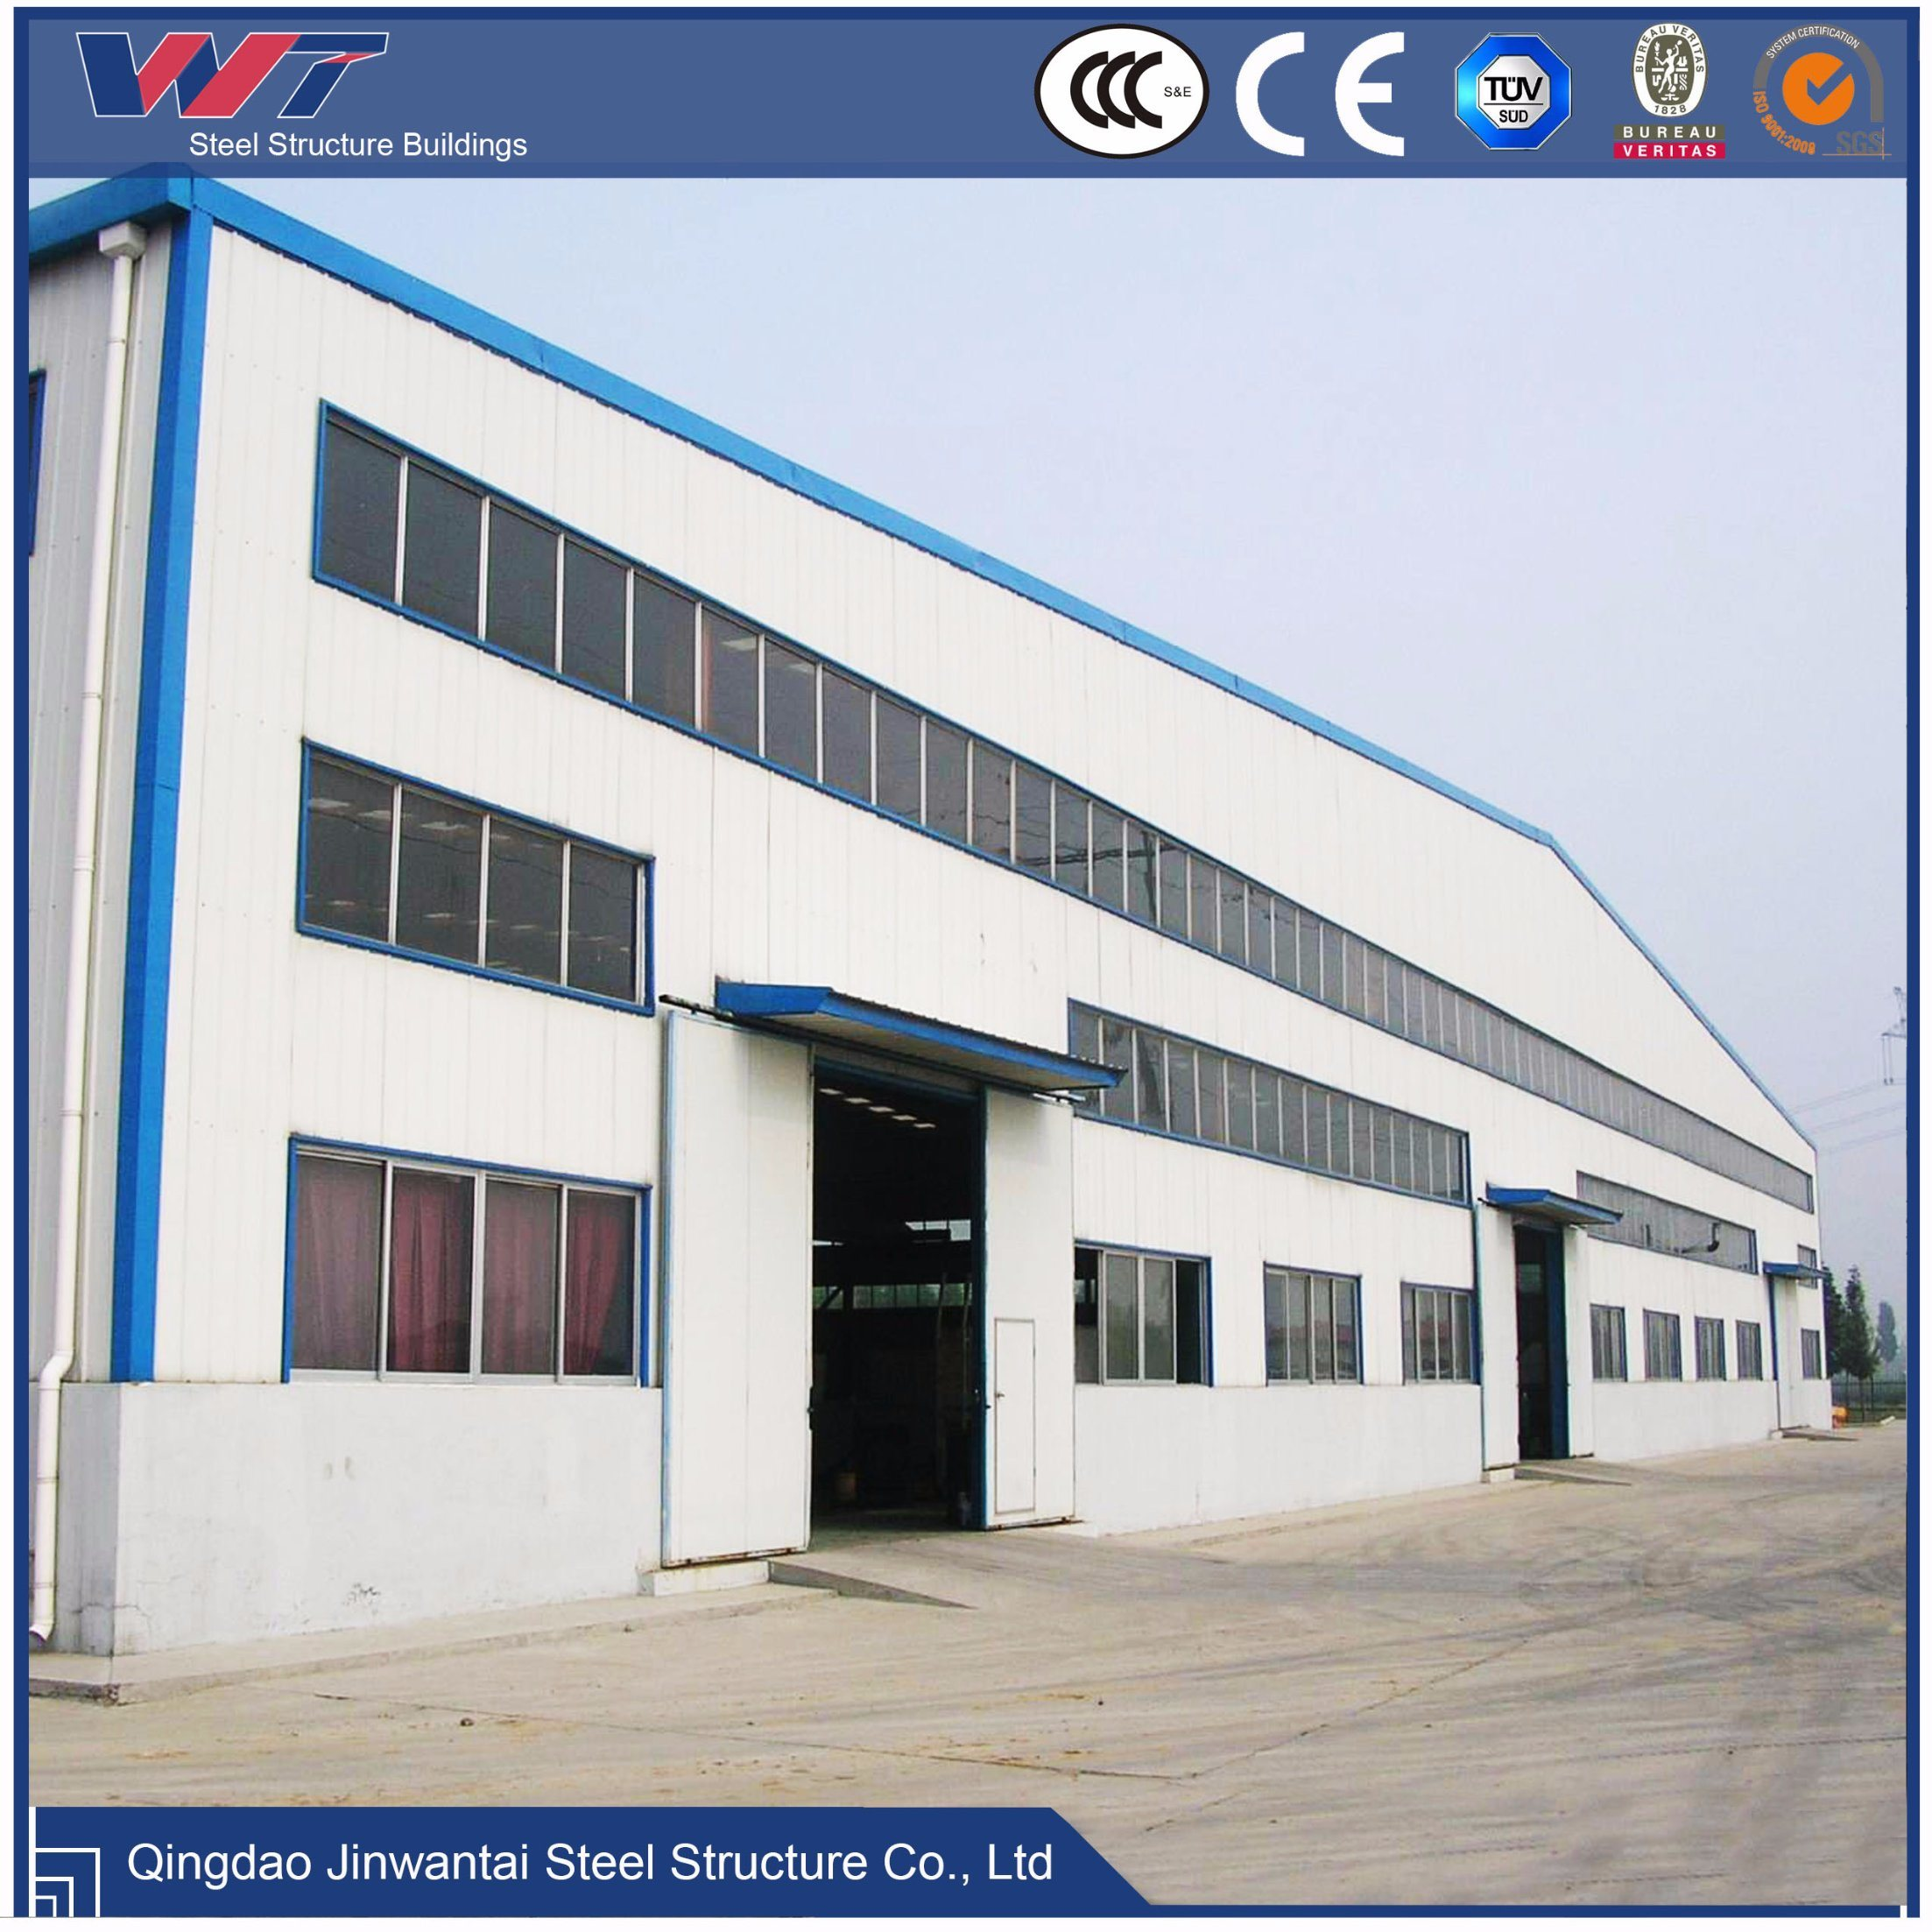 China Top Steel Frame Buildings Manufacturer Steel Structure ...